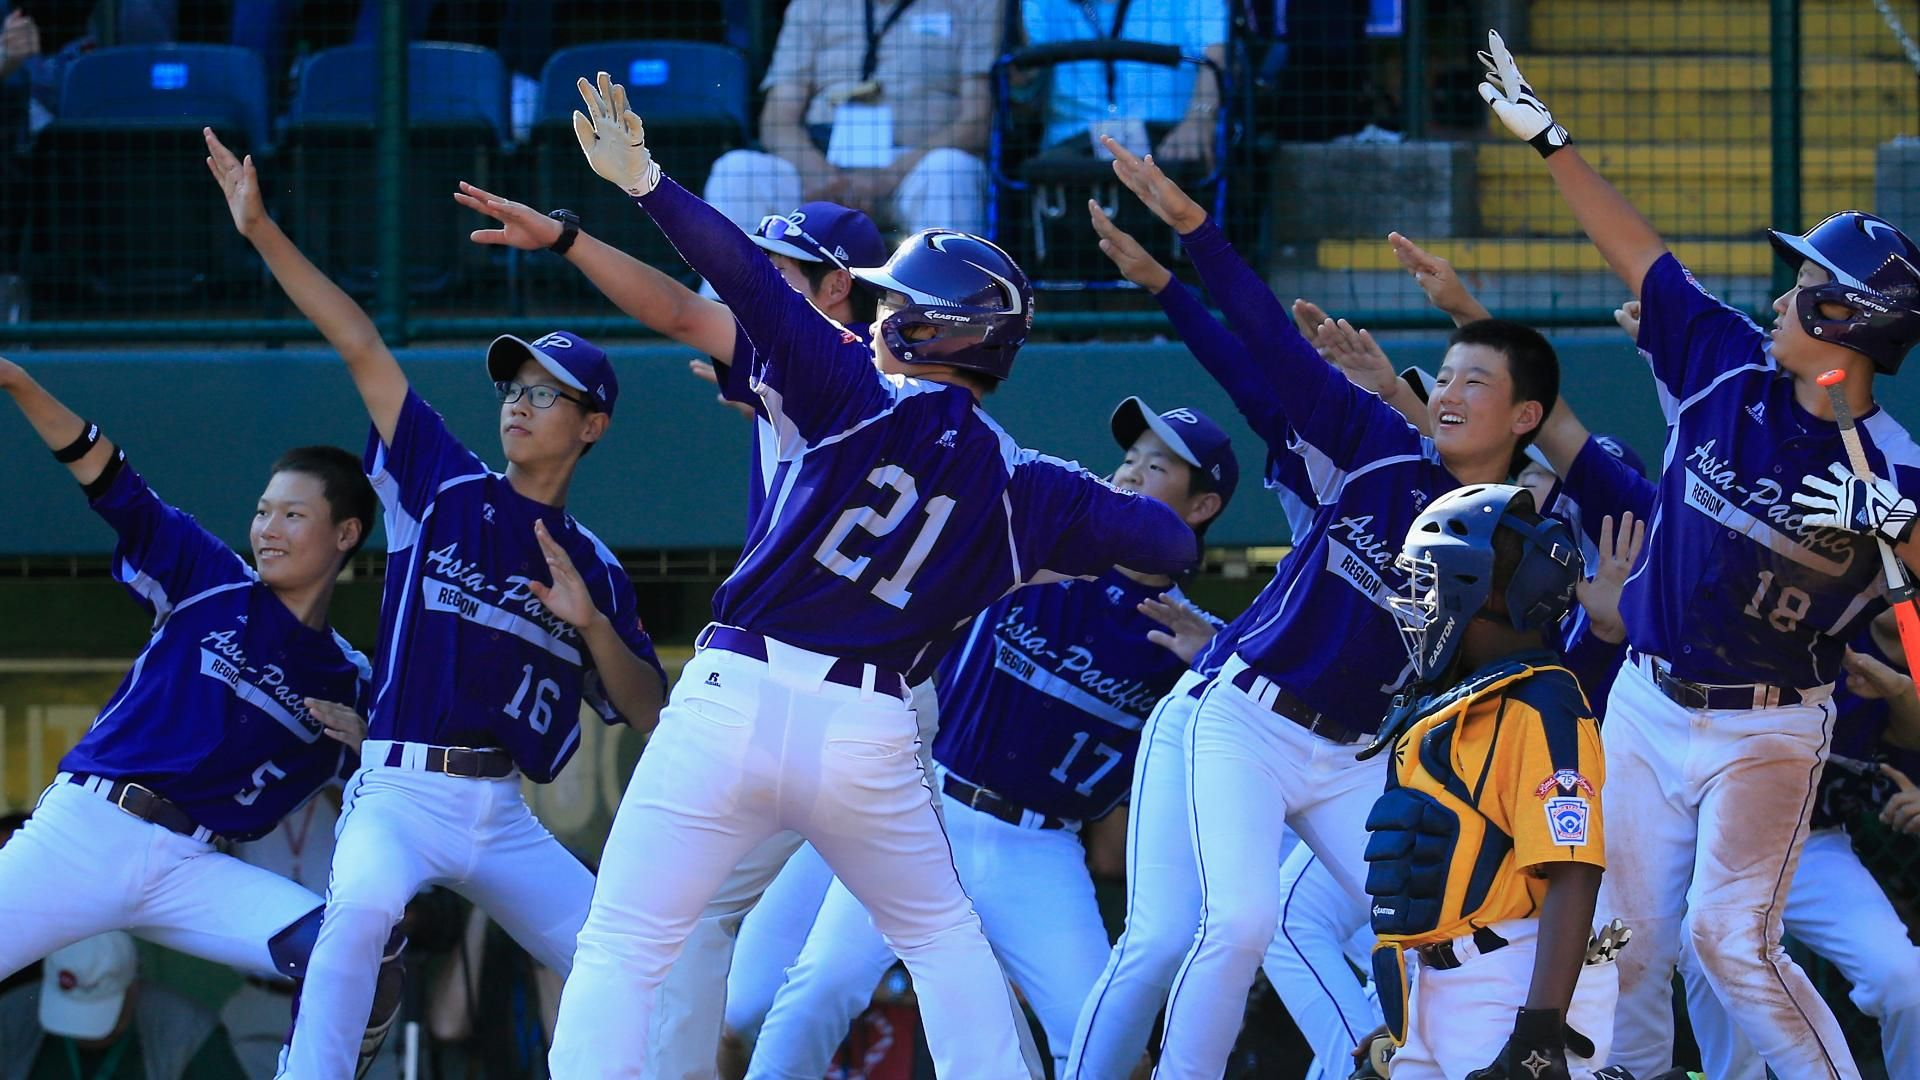 South Korea Wins LLWS Championship